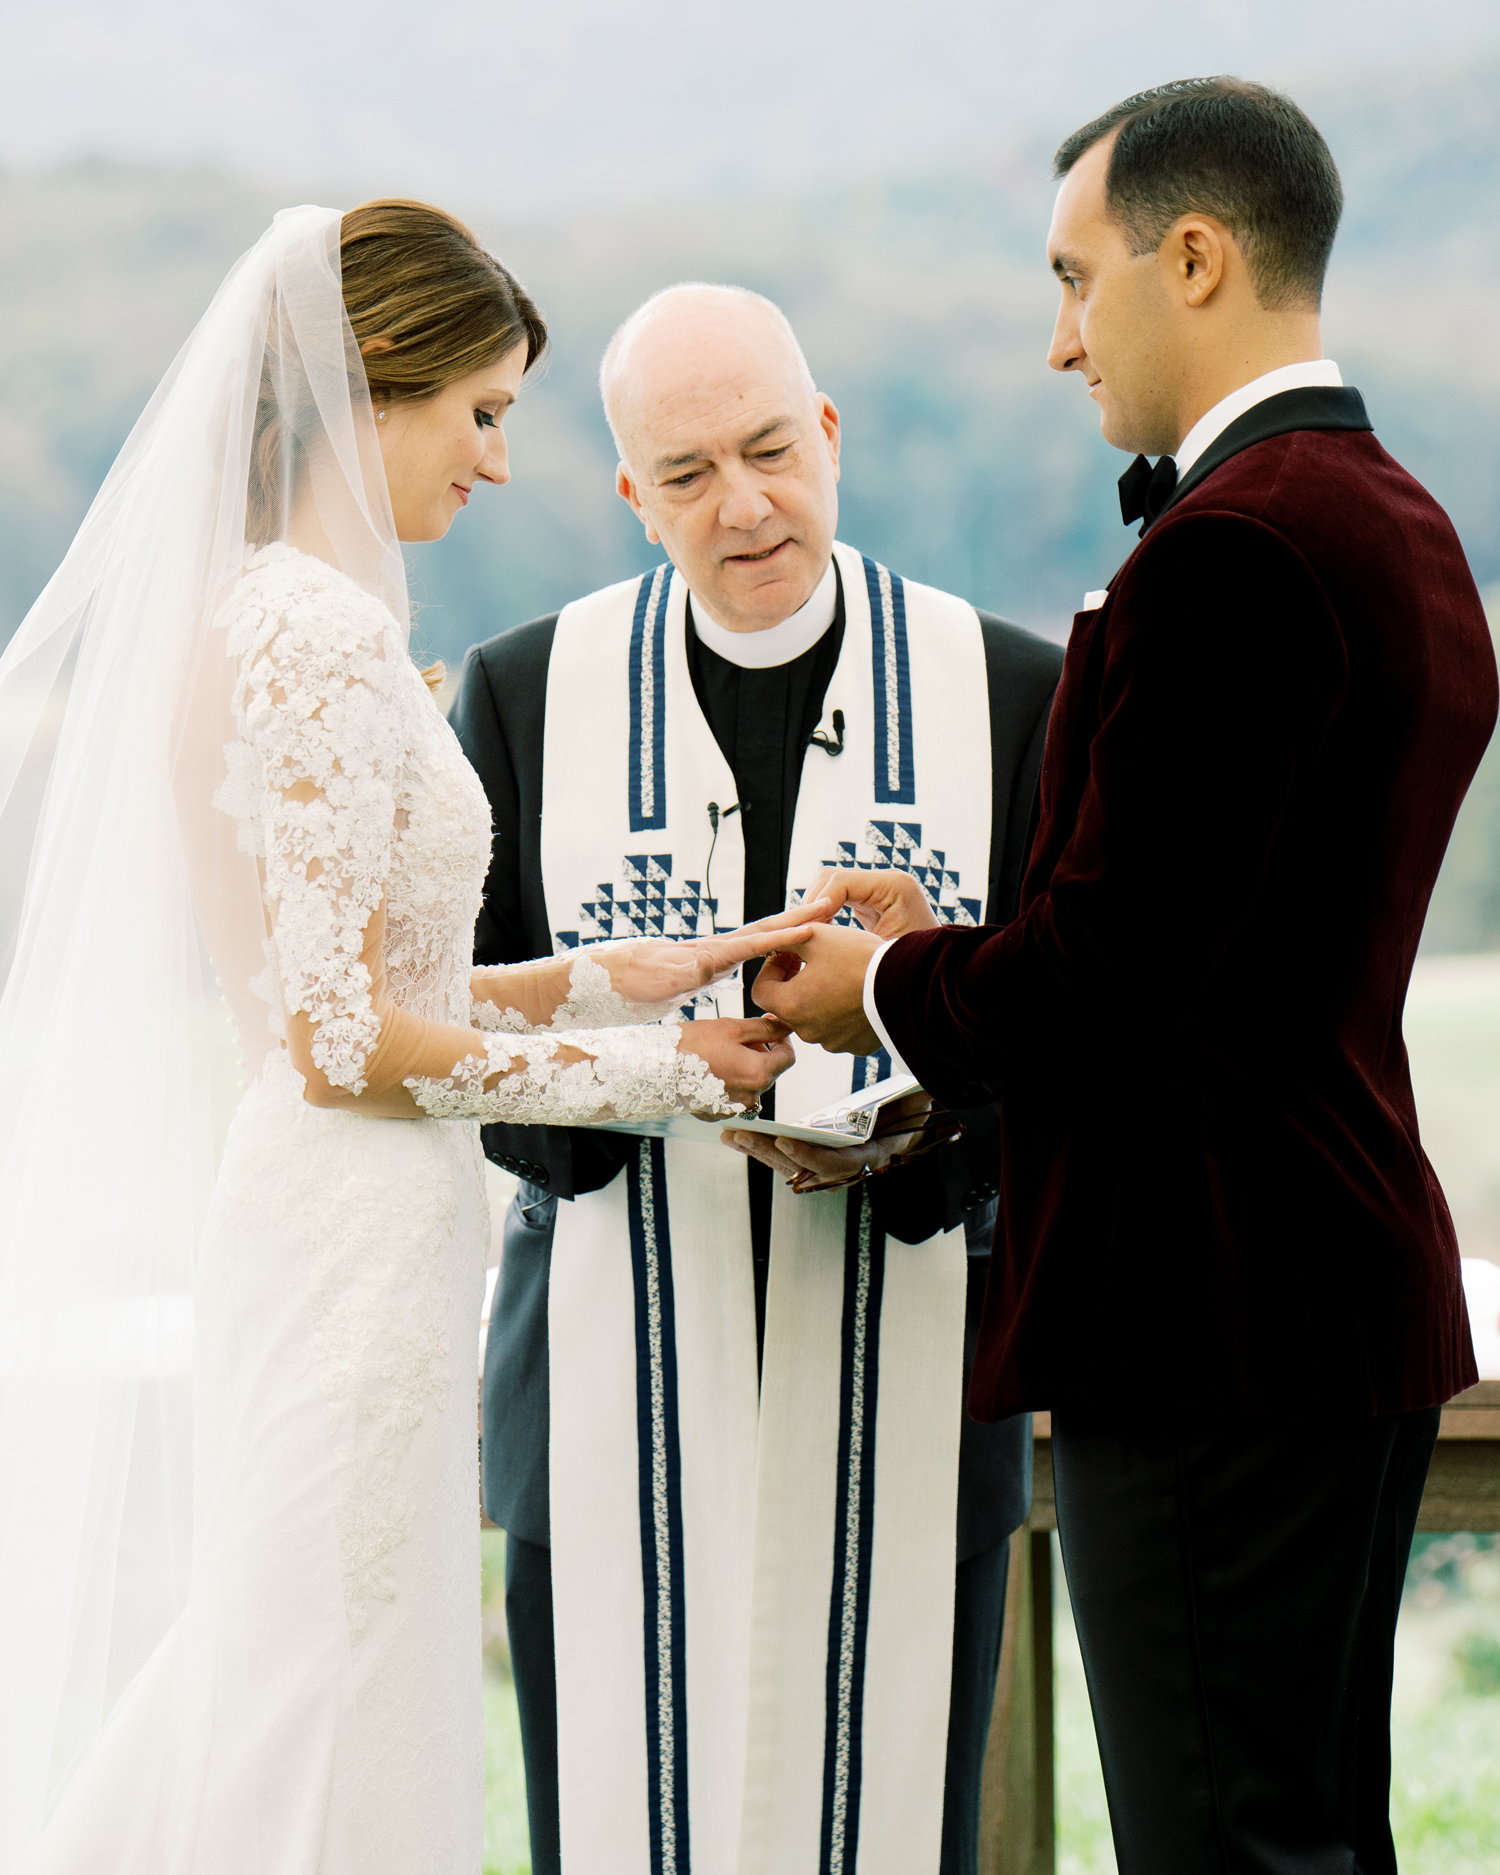 bride and groom sharing wedding vows